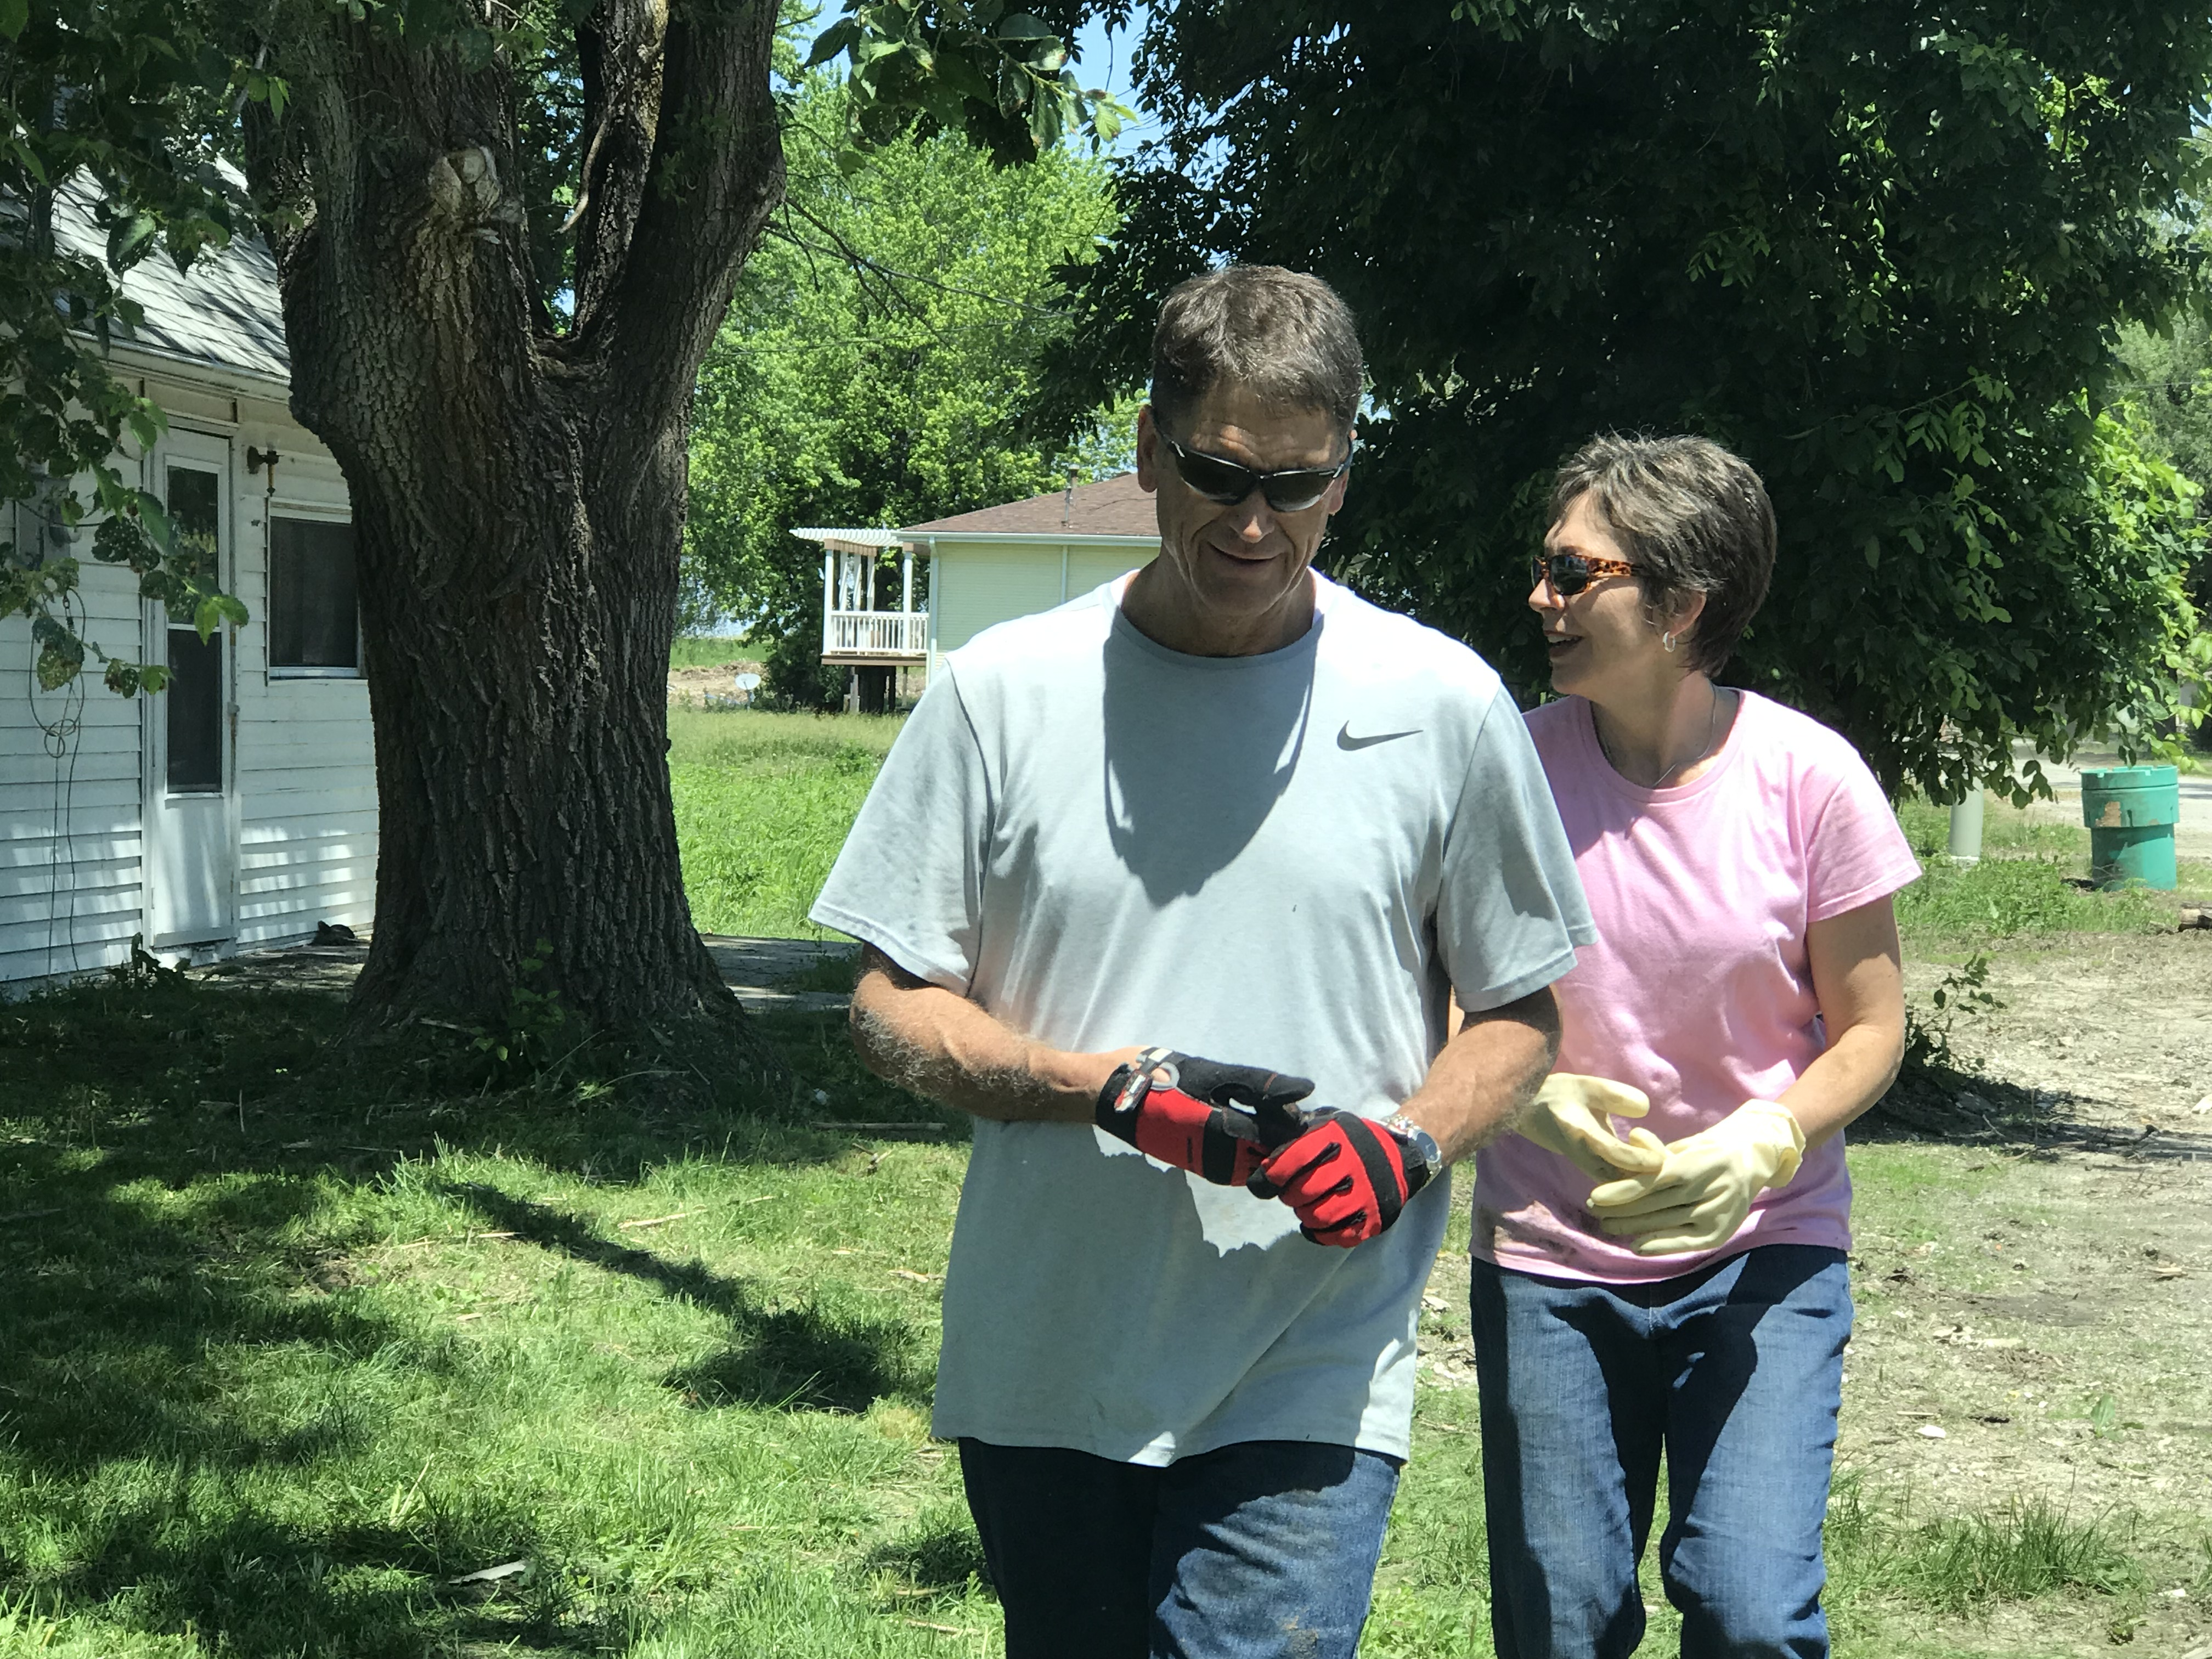 Elder Carl B. Cook and his wife, Sister Lynette Cook, join the youth on June 10, 2019, to clean up yards in Pacific Junction, Iowa.